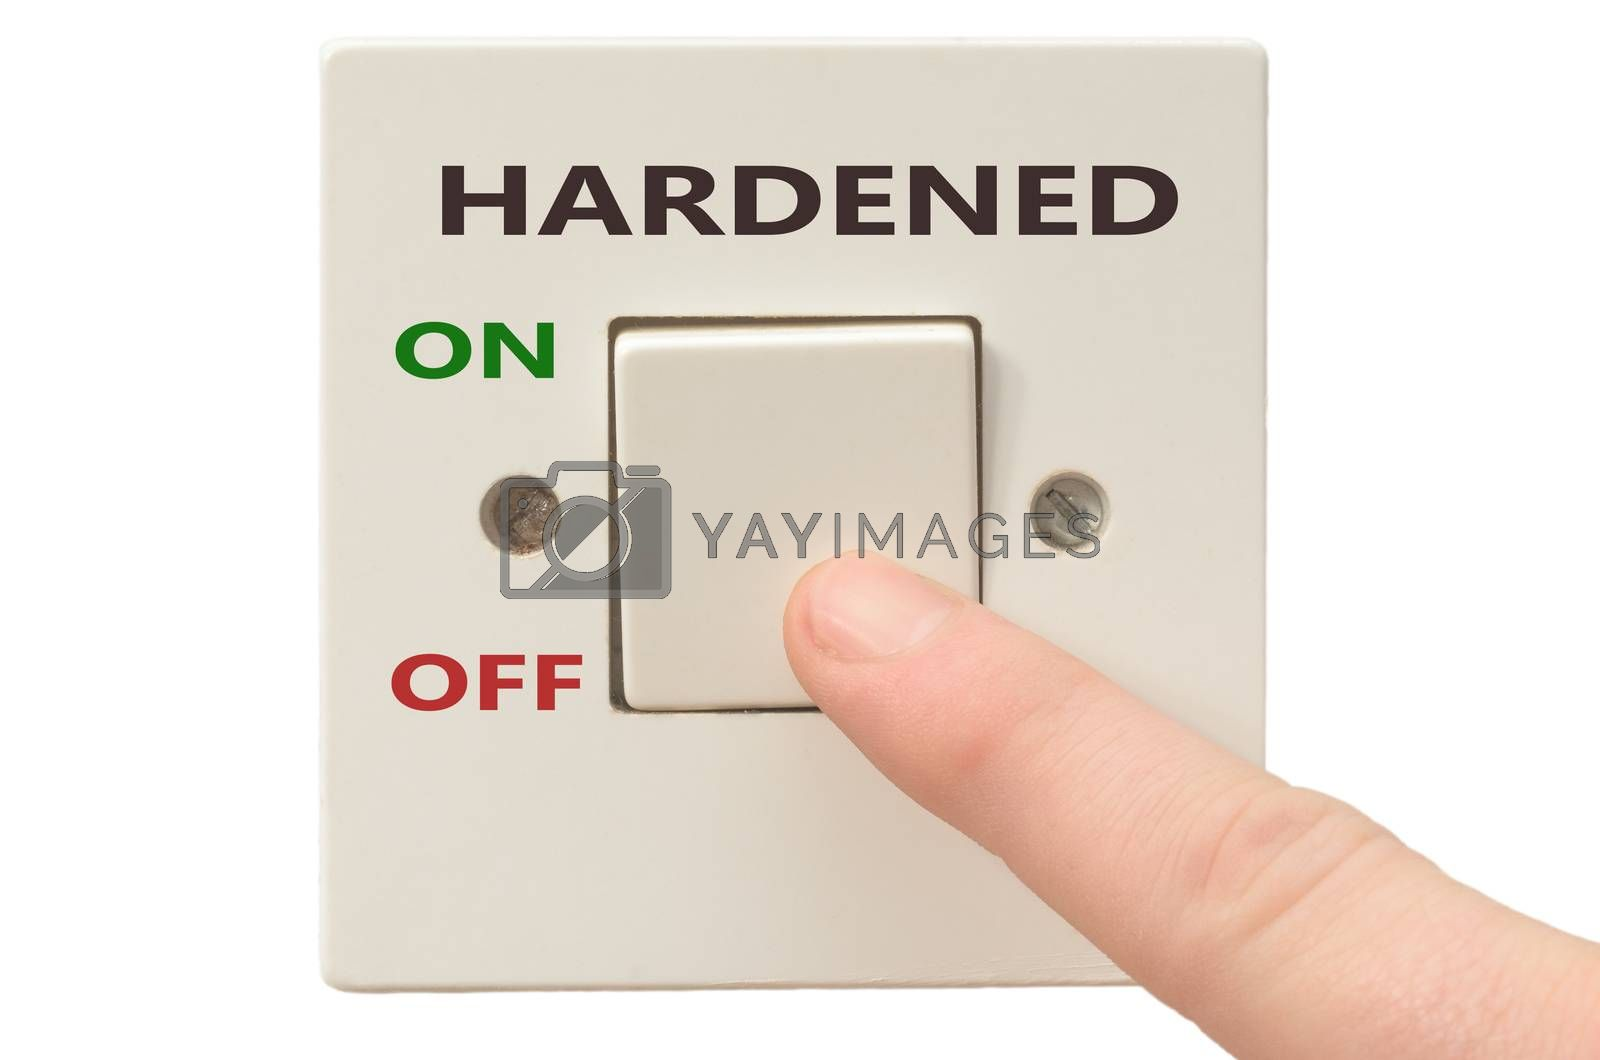 Turning off Hardened with finger on electrical switch